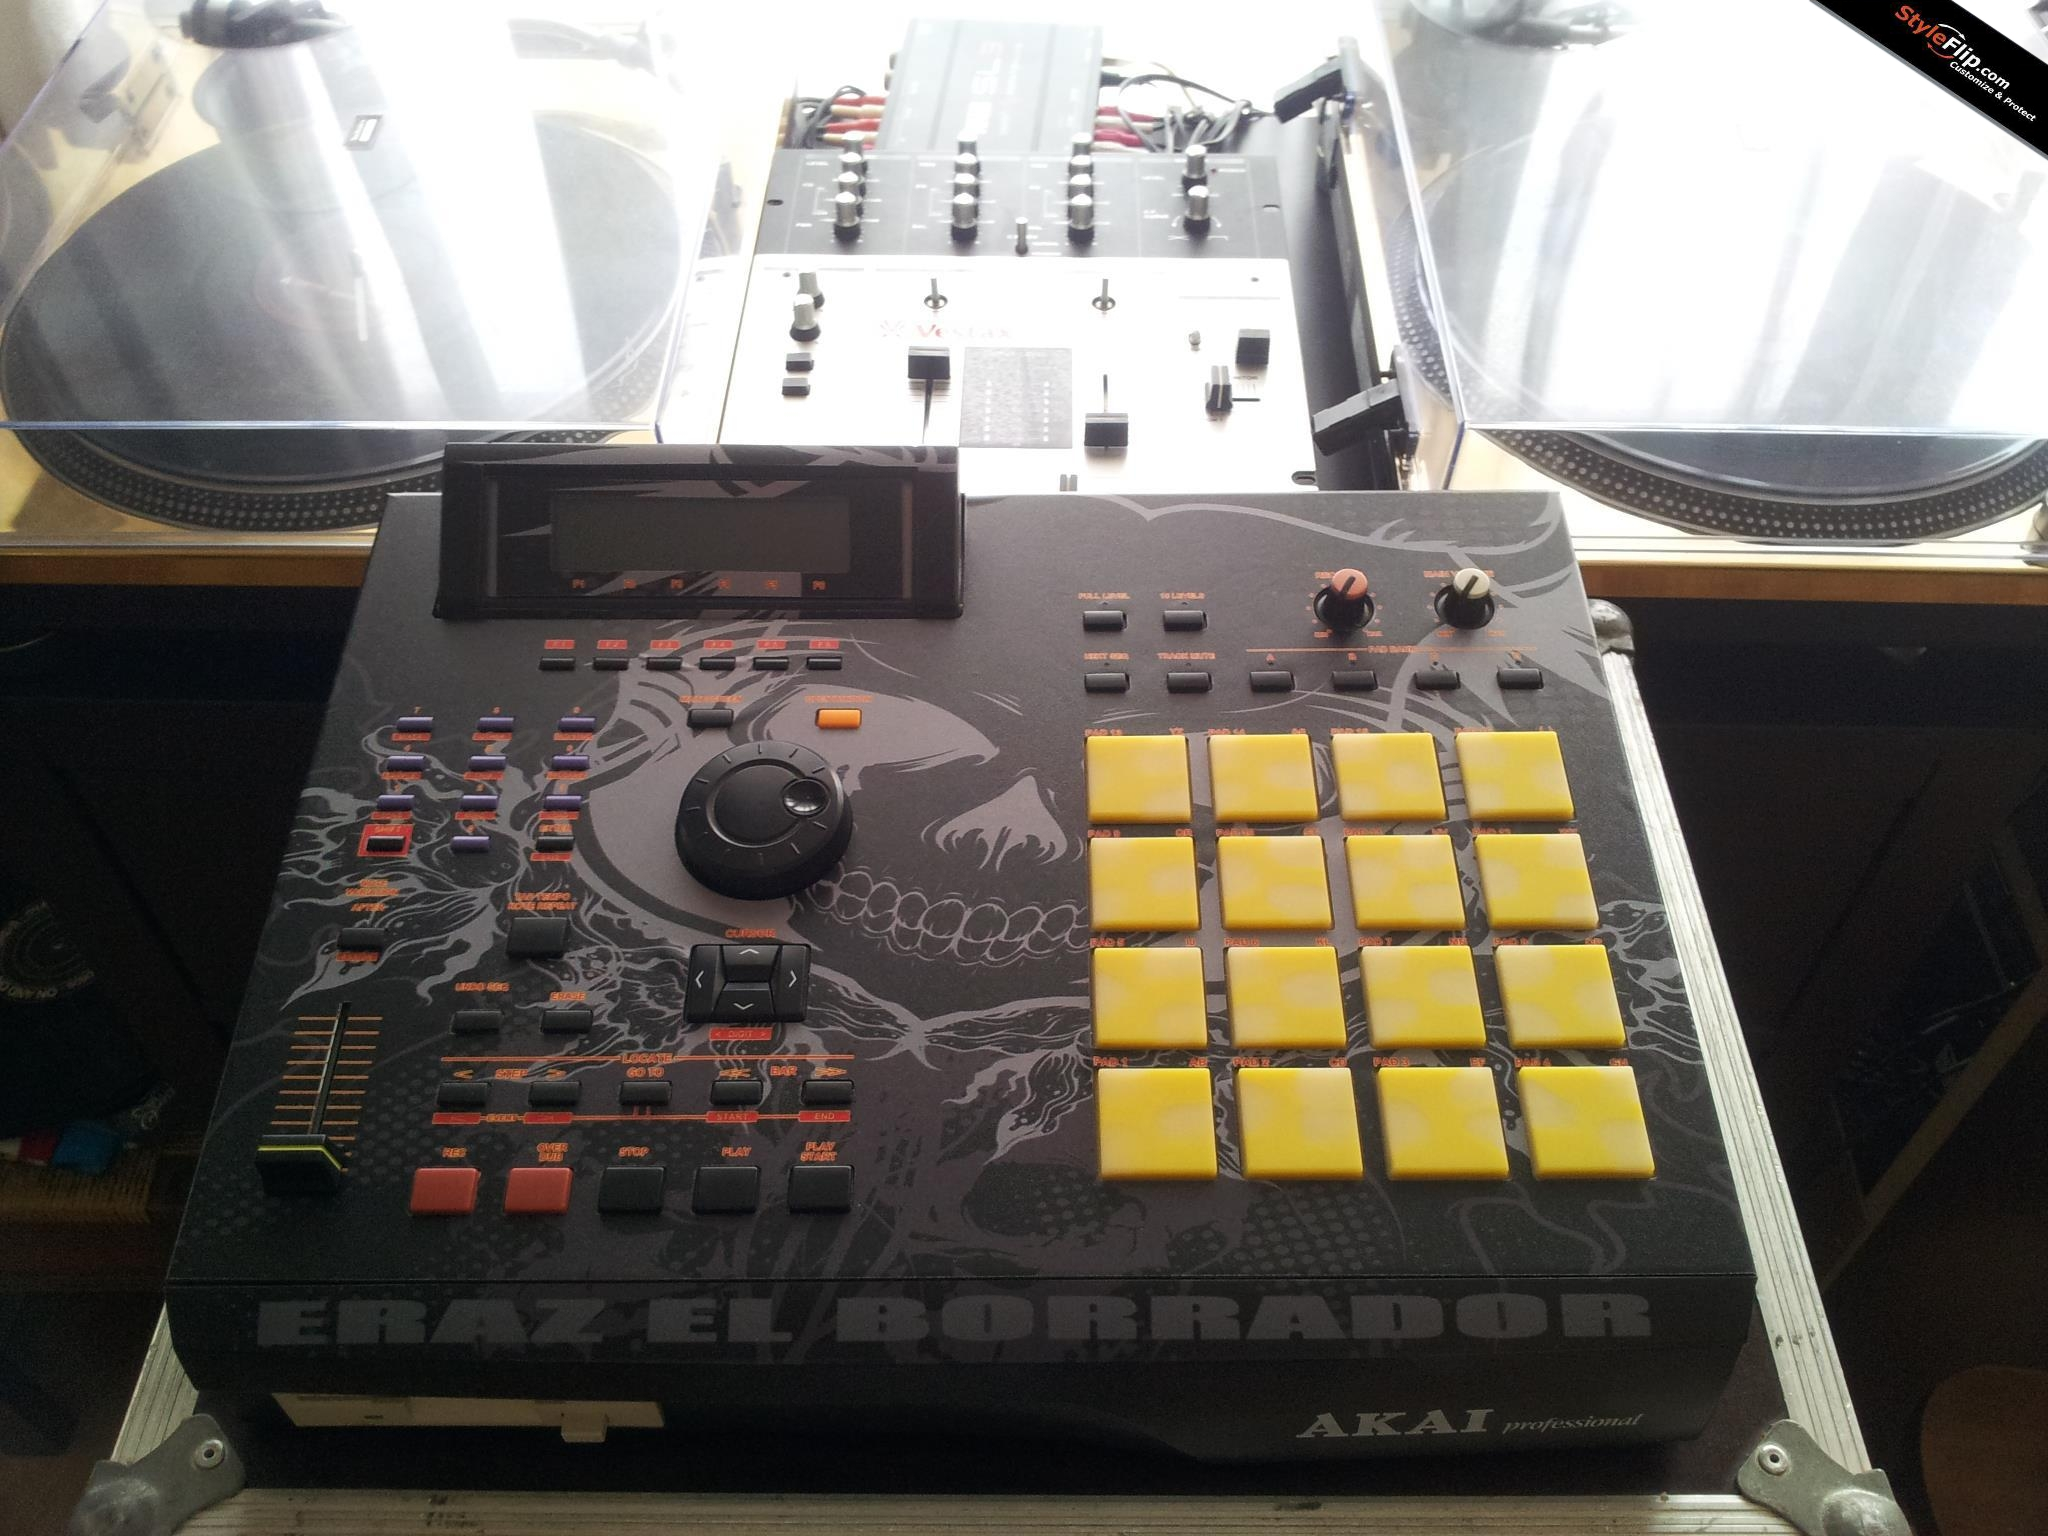 Akai MPC 2000 XL Skin, Decals, Covers & Stickers  Buy custom skins